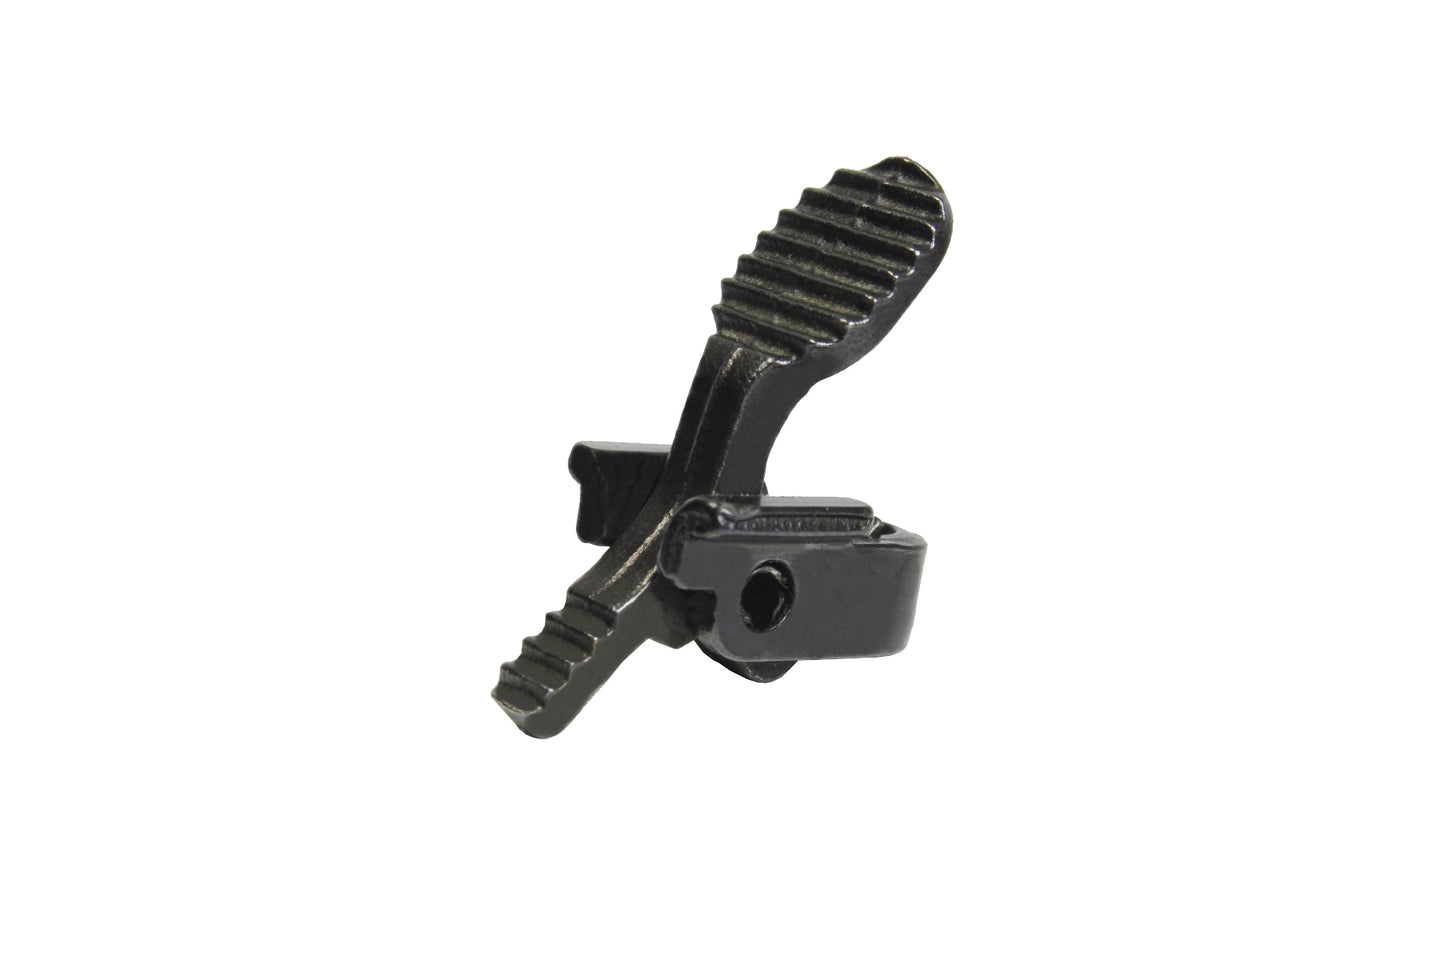 VFC SCAR Mock Bolt Release Replacement | Black